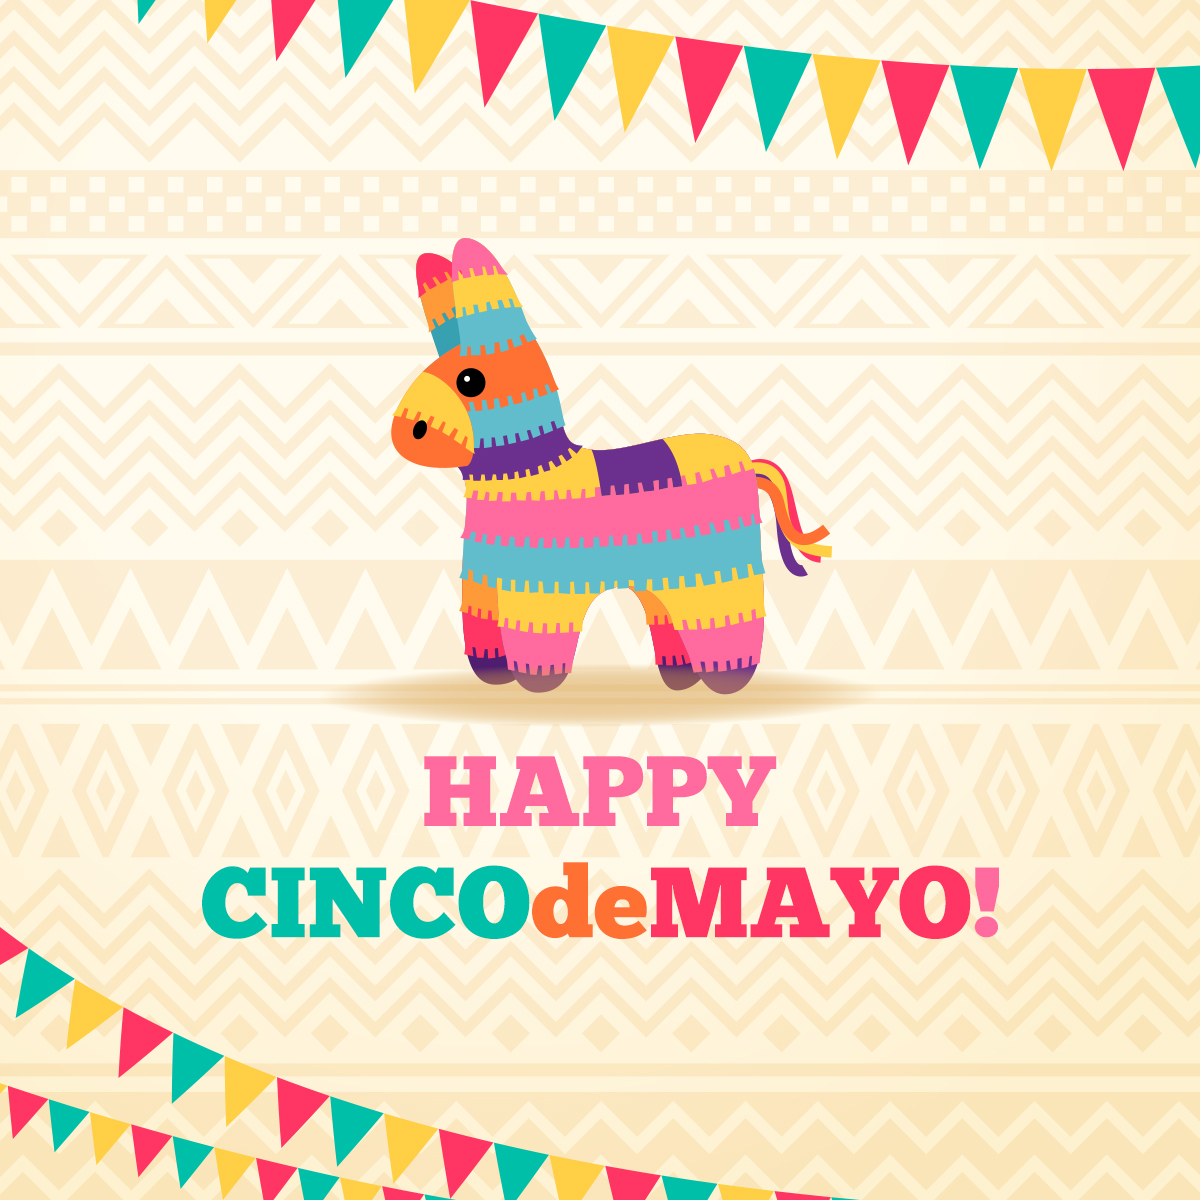 02-CincodeMayo